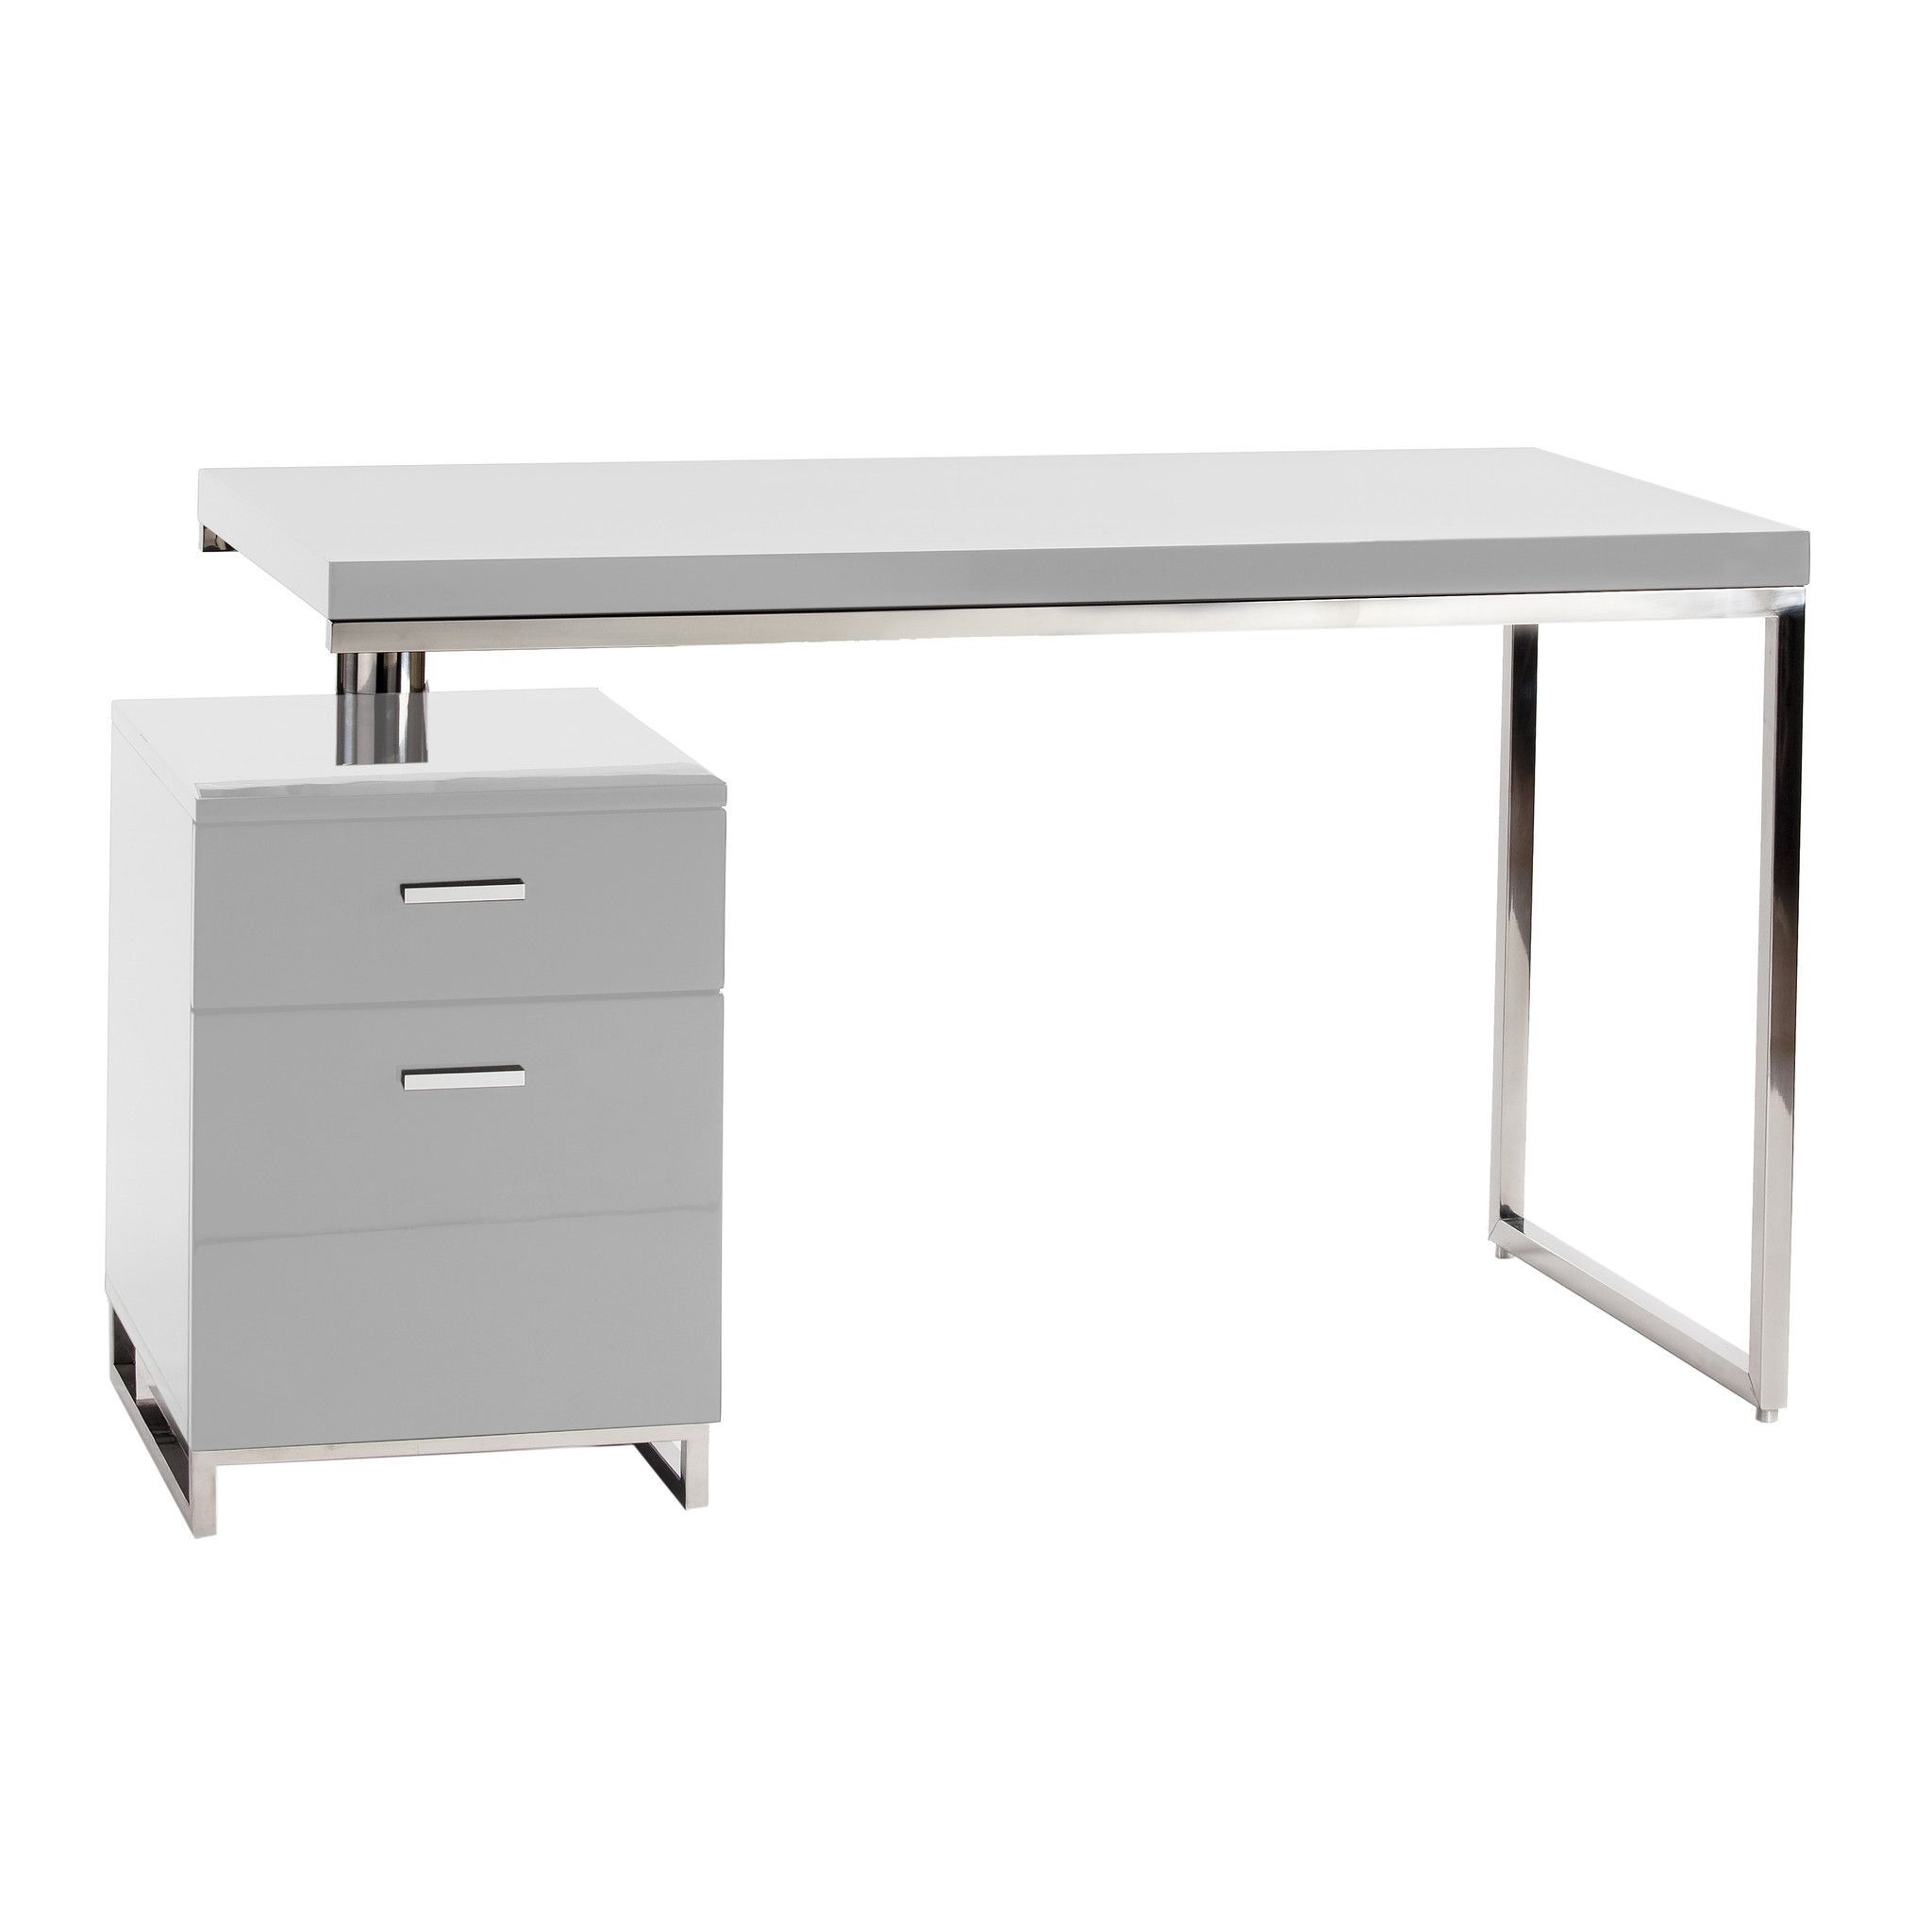 Moe S Home Collection Martos Modern Office Writing Desk With Storage Cabinet File Cabinet Desk Moe S Home Collection Desk Design